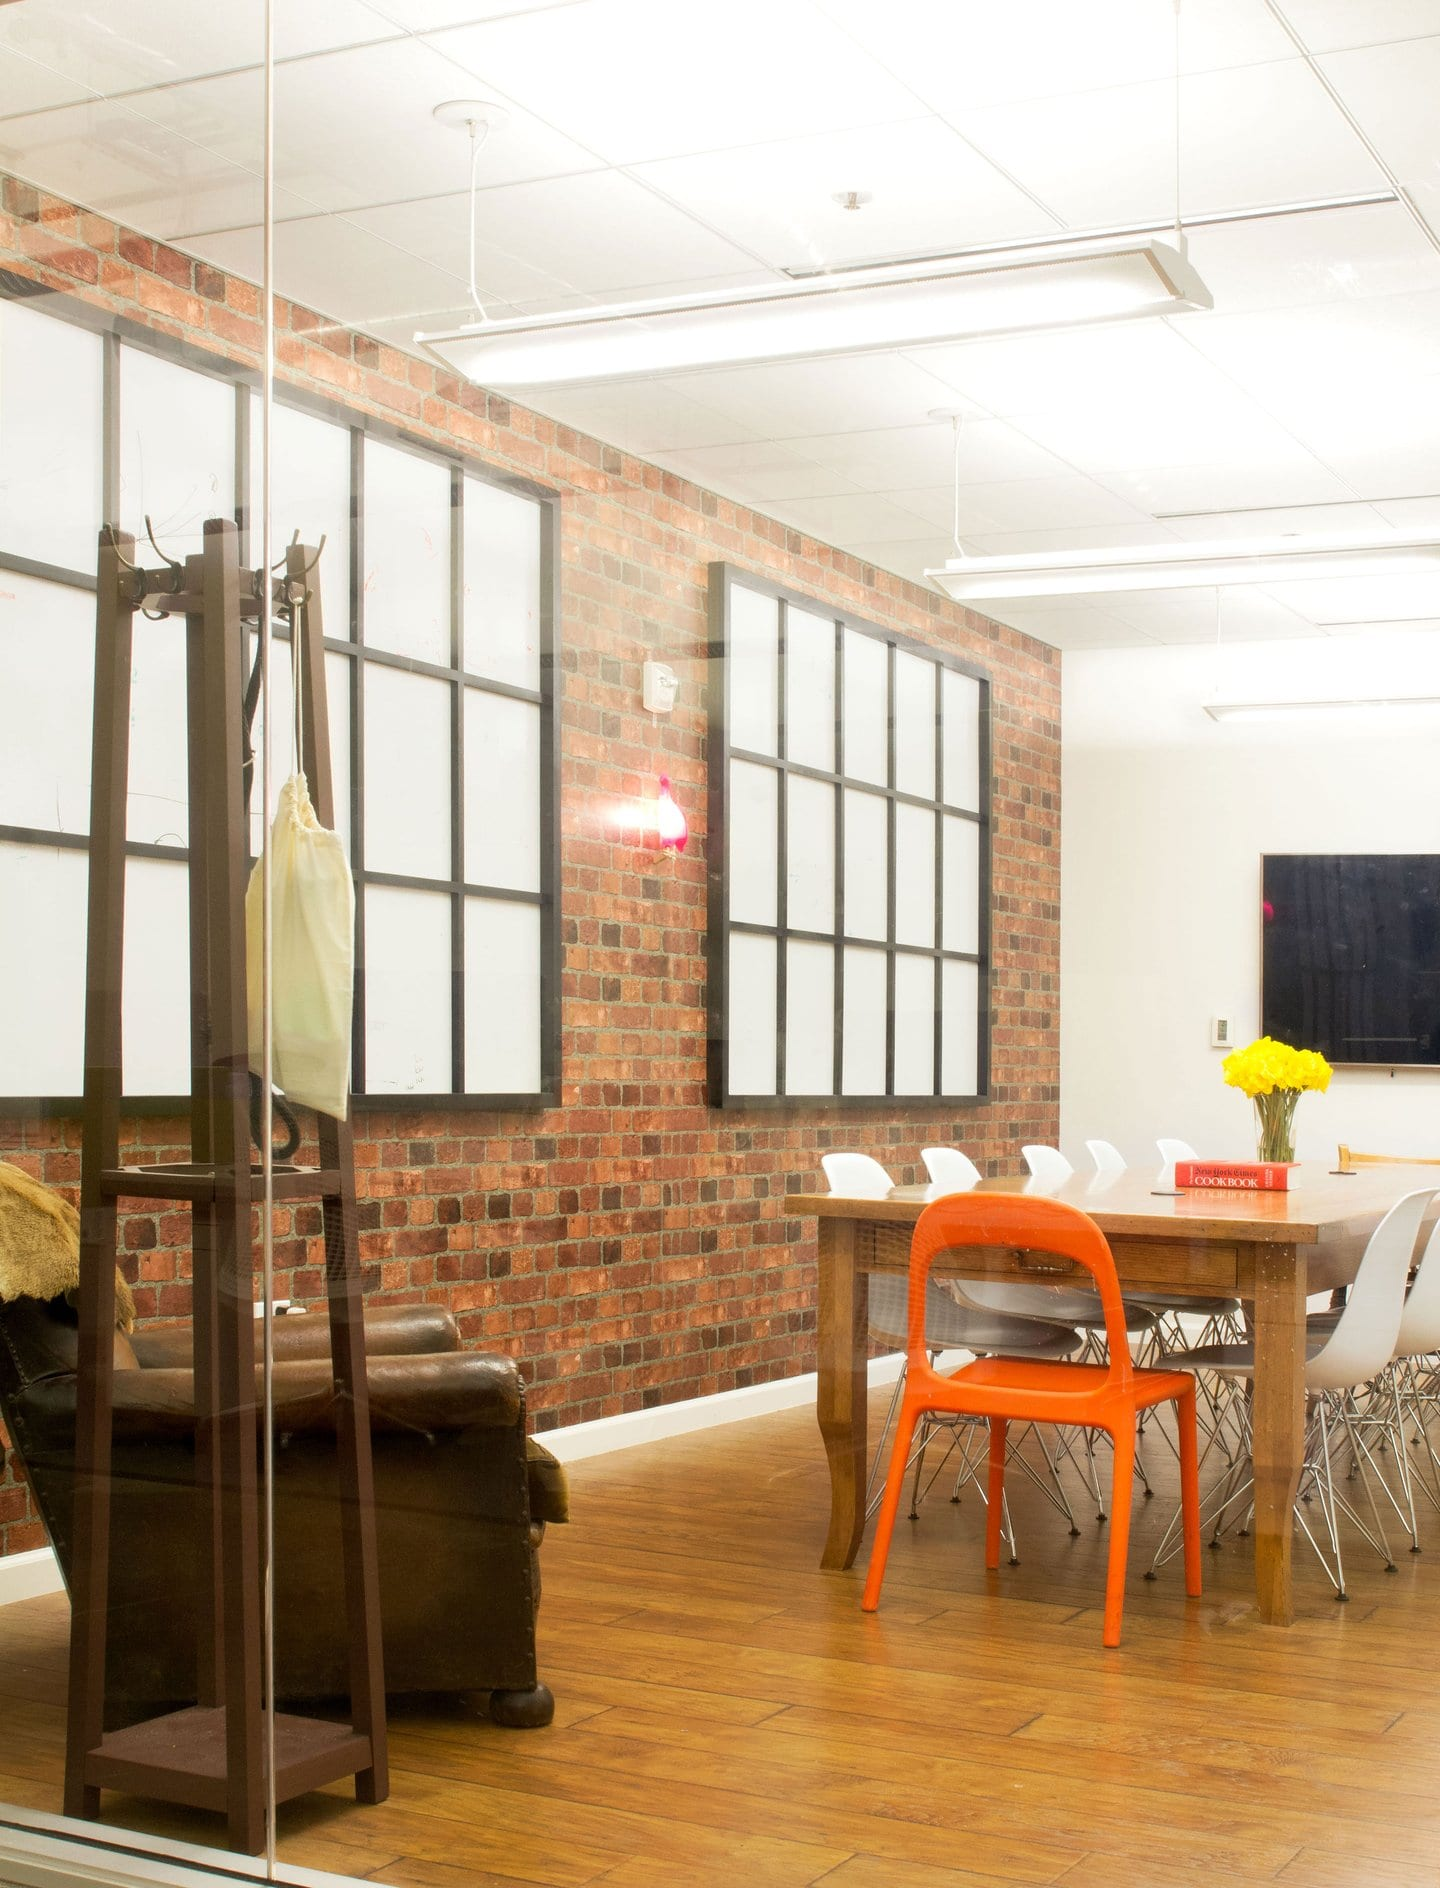 airbnb leads inspirational office arms race with strangelove war room cool office interiors airbnb cool office design train tracks